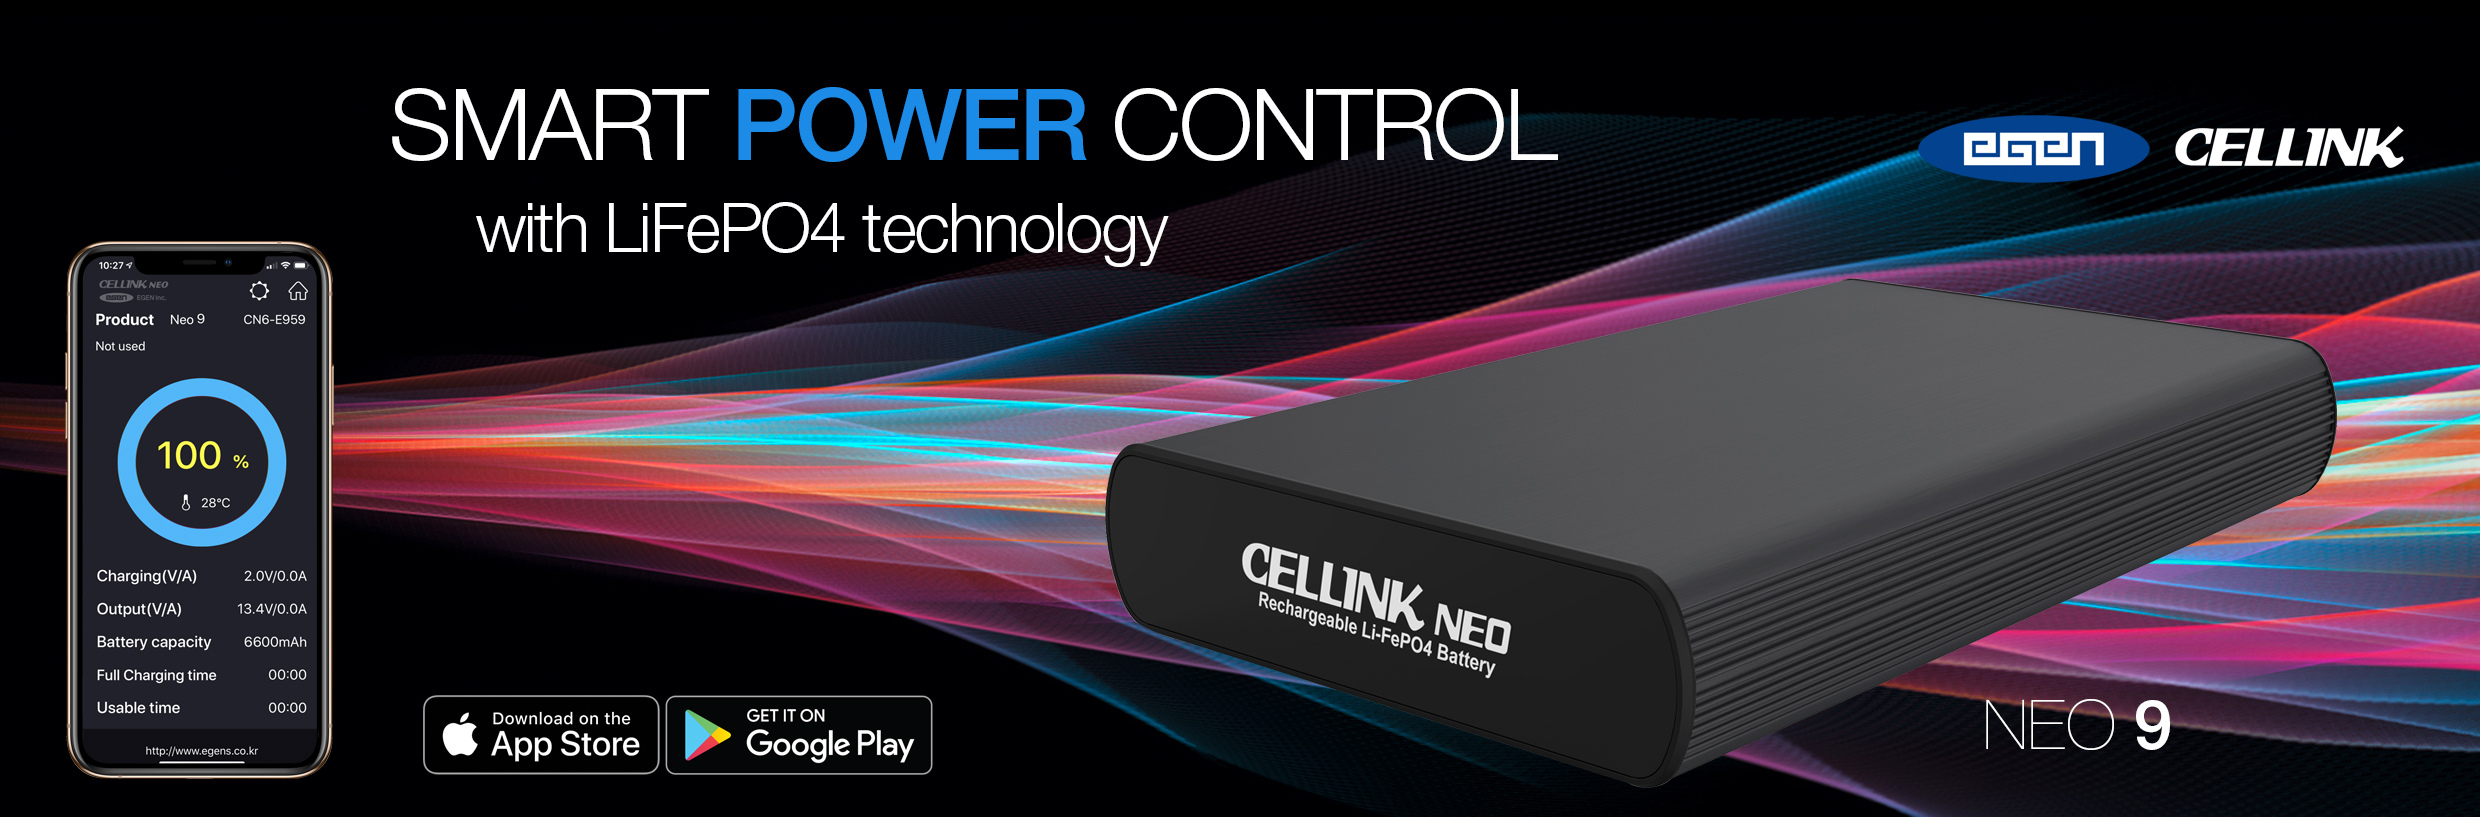 Cellink NEO 9 Battery Pack For Blackvue Dash Cameras - Blackvue Accessories